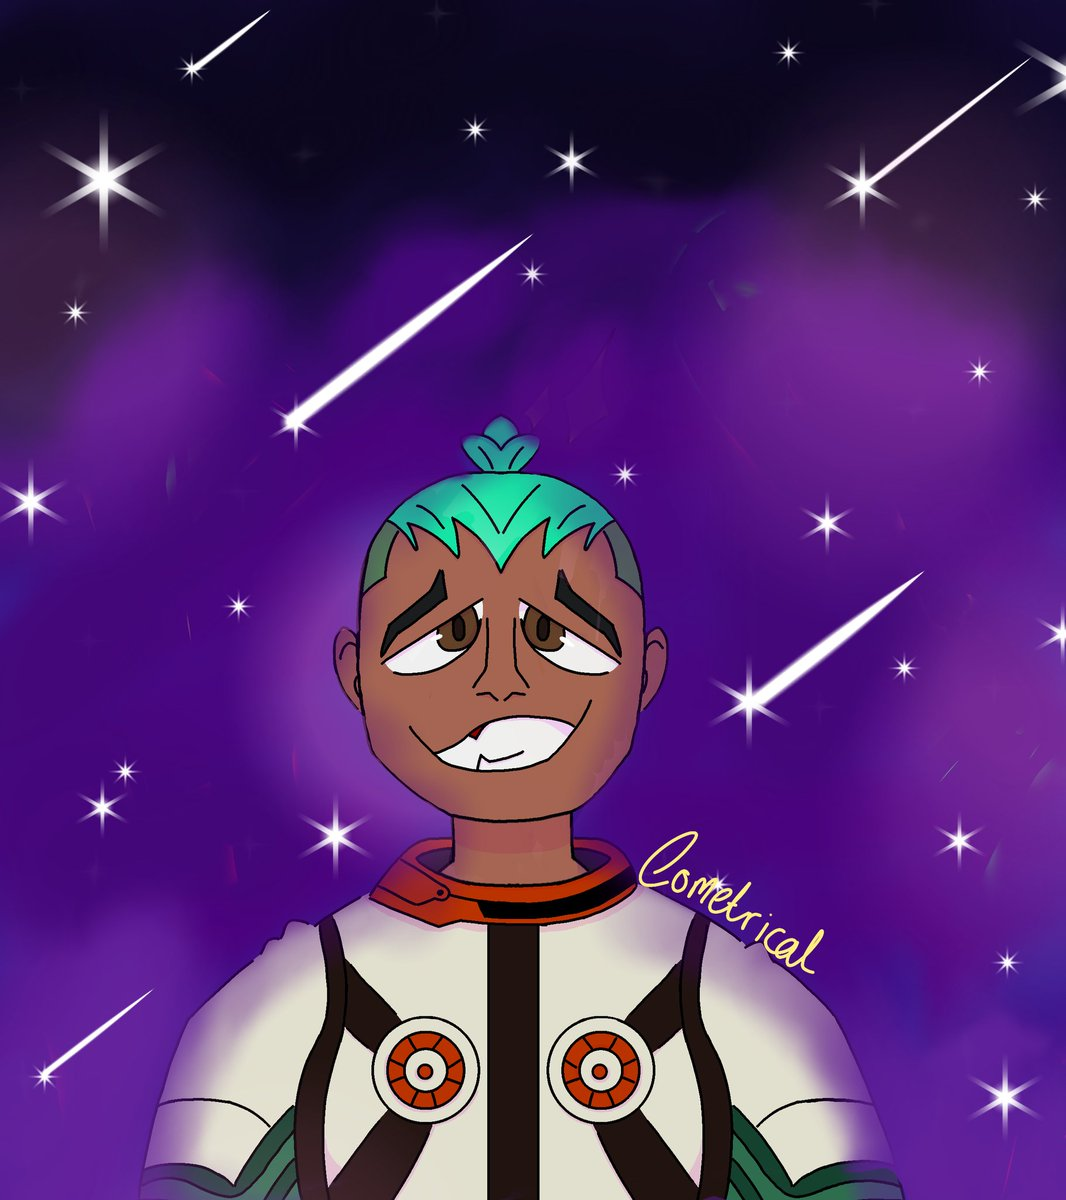 Stars up above   Ignore: #Fortnite #FortniteArt #FortniteFanArt #BattleRoyale #teamghost #teamshadow #fortniteartworkpic.twitter.com/Q4dYxCcAUQ